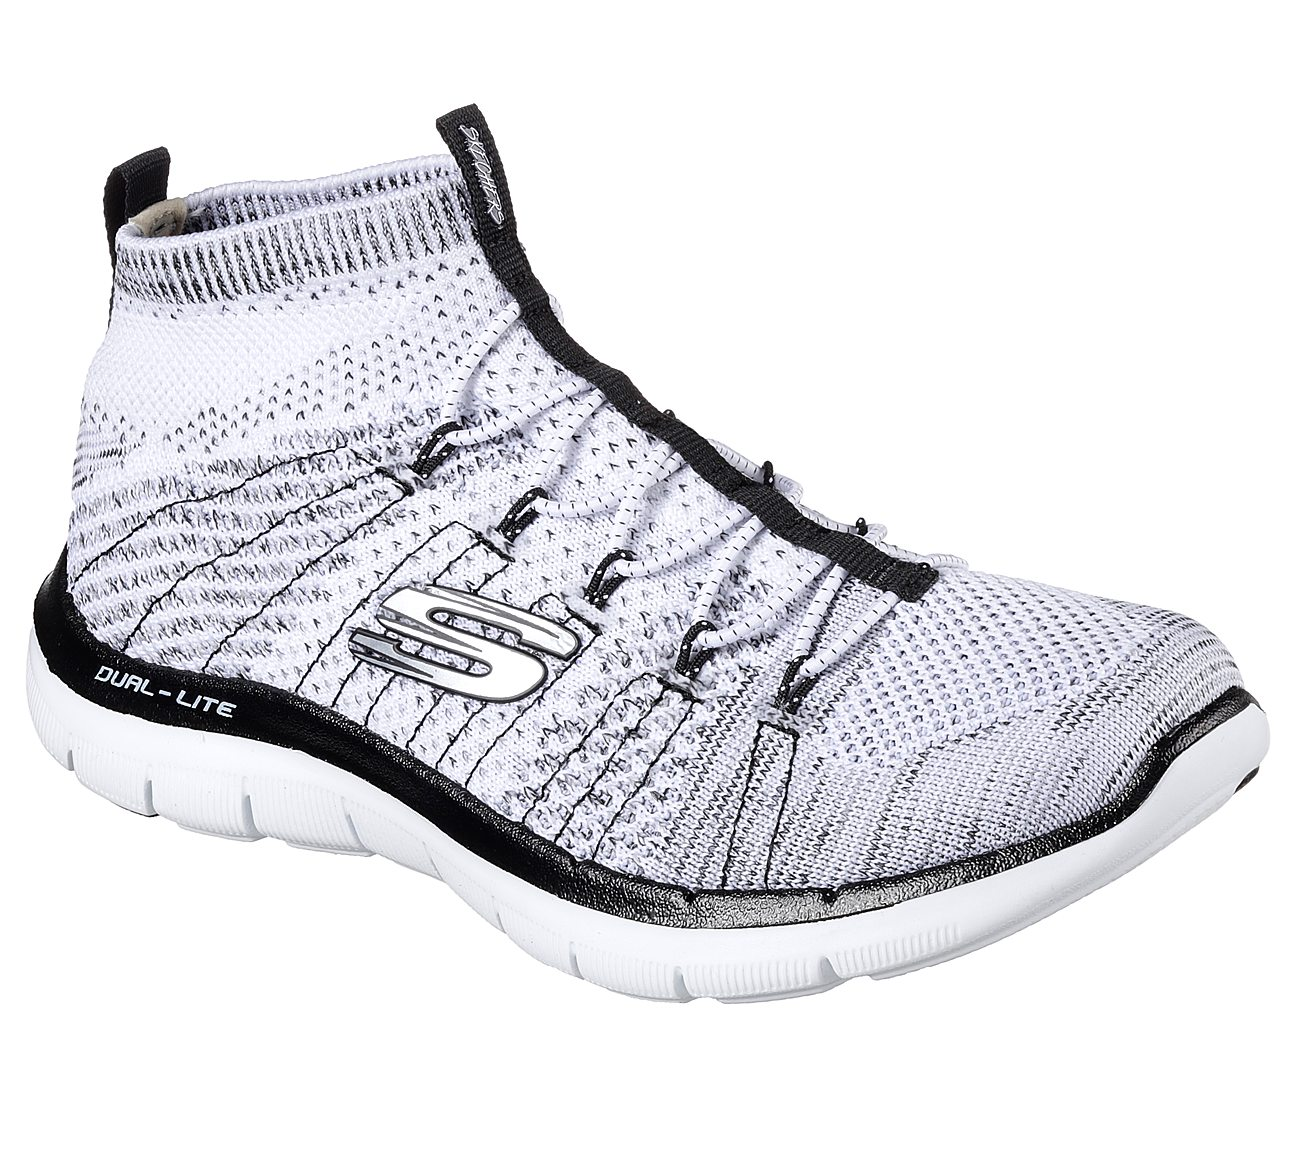 Skechers Flex Appeal 2.0 Hourglass